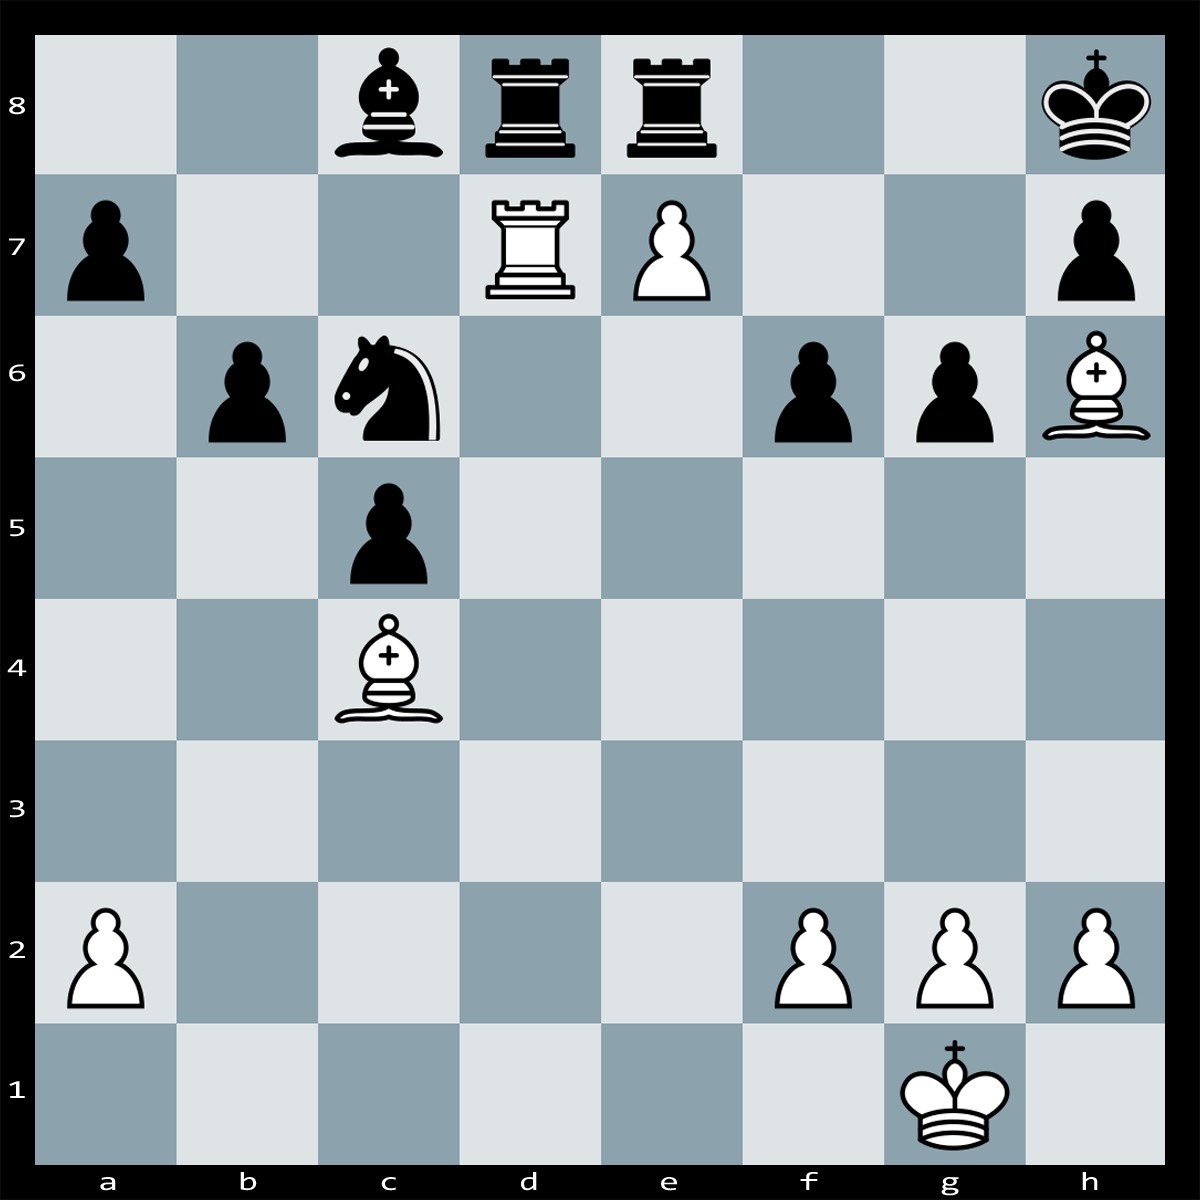 Mate in three Moves, White to Play | Chess Puzzle #118